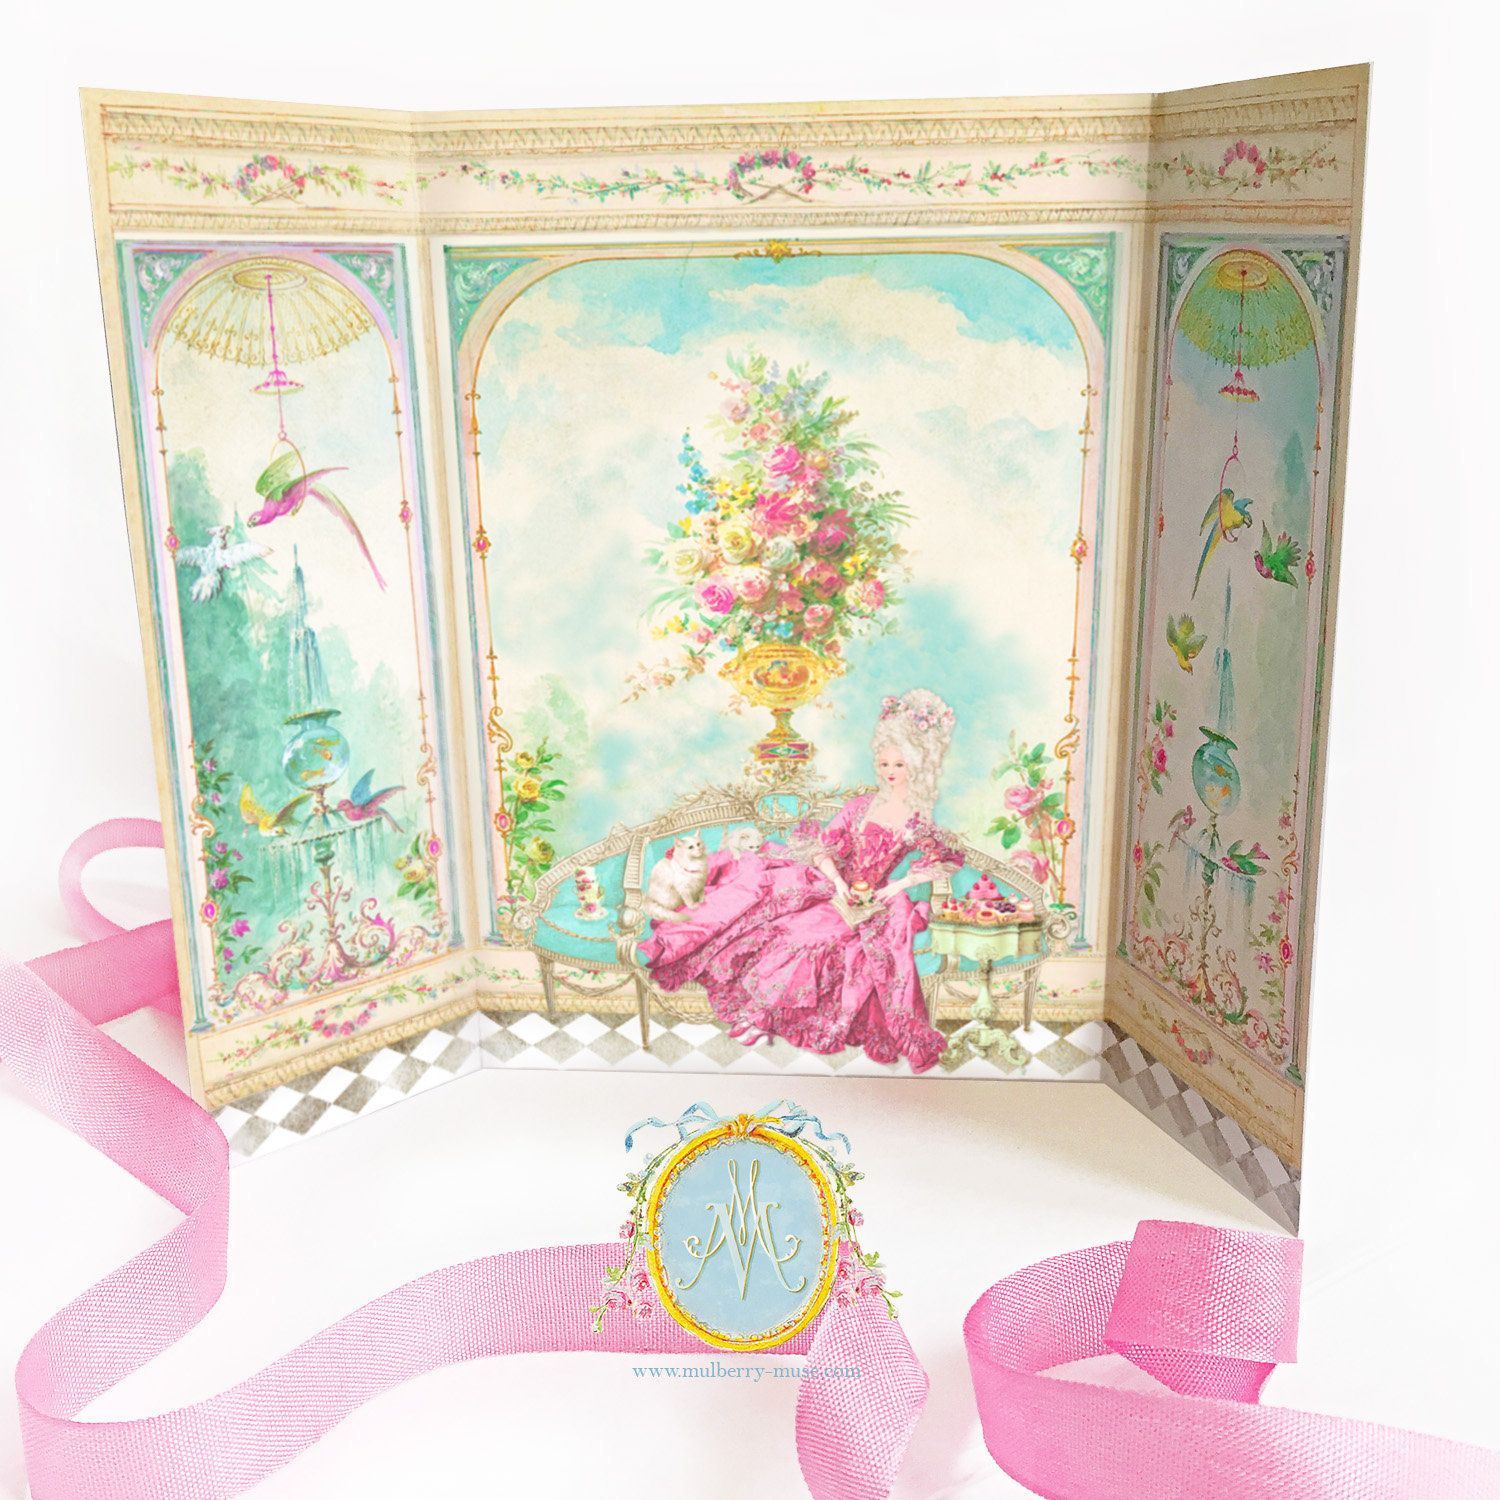 Marie Antoinette card, French Conservatory, Garden room, Parisienne decor, Petite Maison, diorama, roombox card #conservatorygarden